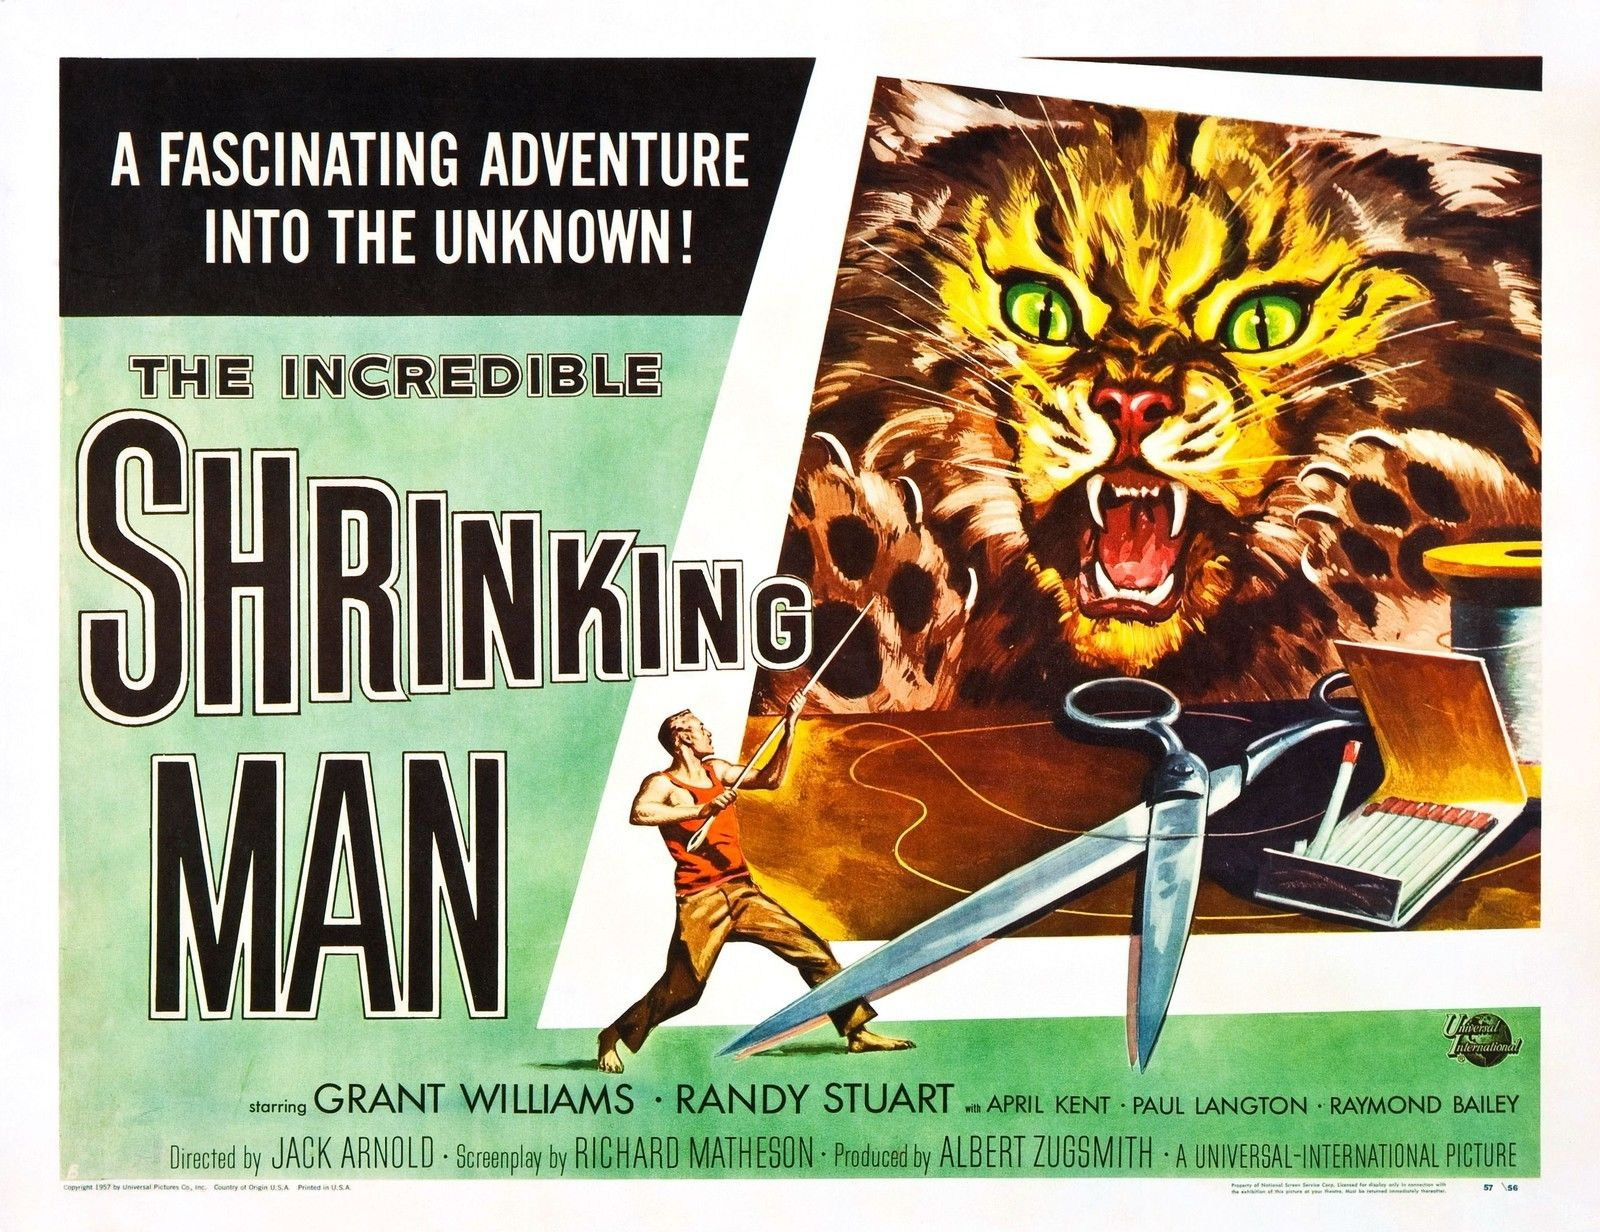 73673-THE-INCREDIBLE-SHRINKING-MAN-Fantasy-Sci-Fi-FRAMED-CANVAS-PRINT-Toile